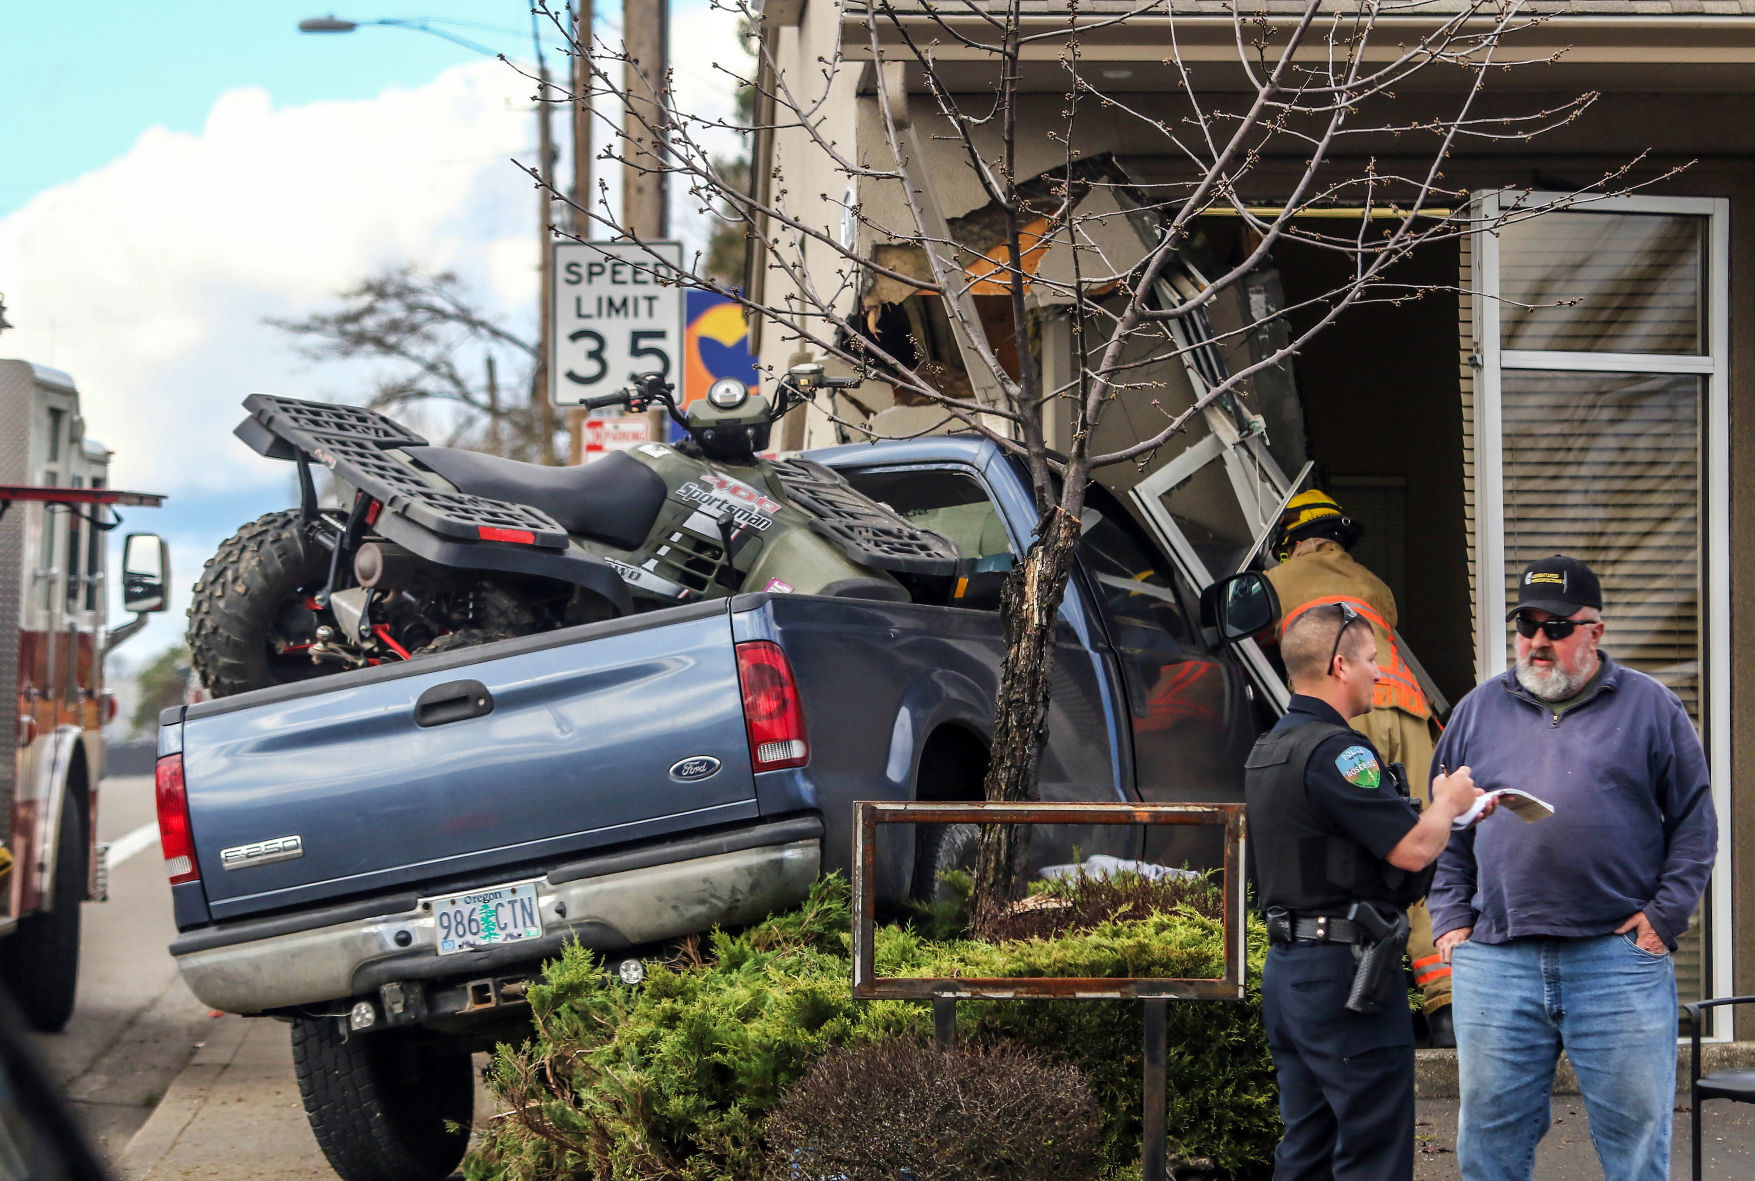 nrtoday.com - JANELLE POLCYN The News-Review - Pickup crashes into Berkshire Hathaway in Roseburg